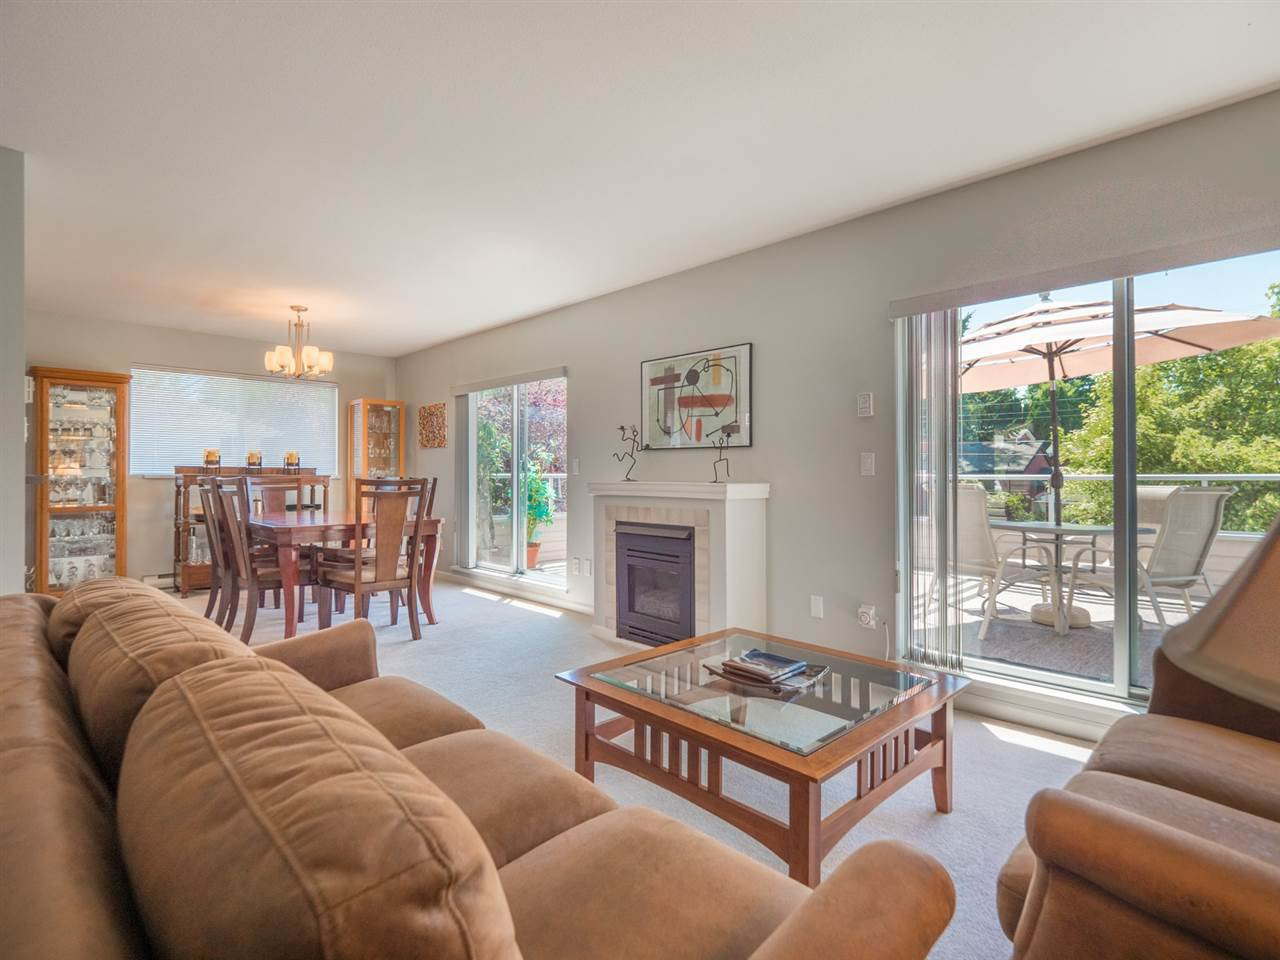 """Photo 4: Photos: 16 5630 TRAIL Avenue in Sechelt: Sechelt District Townhouse for sale in """"HIGHPOINT"""" (Sunshine Coast)  : MLS®# R2382780"""